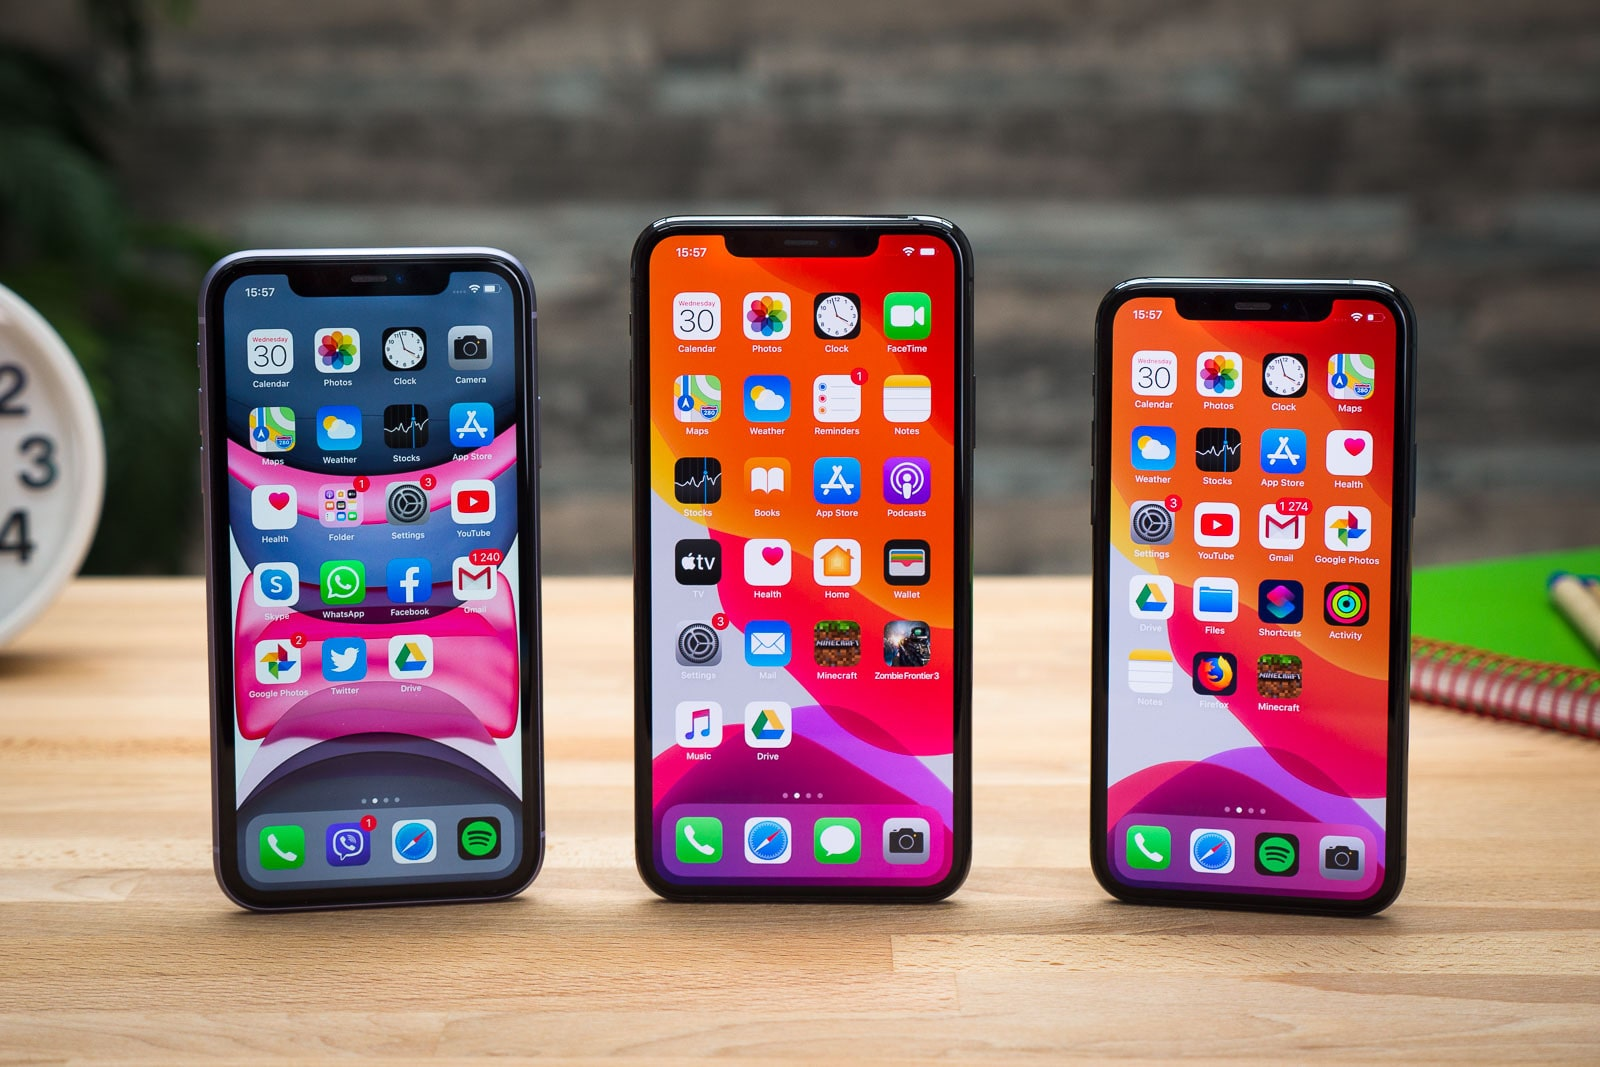 3. iPhone 11, iPhone 11 Pro, iPhone 11 Pro Max – The Best Apple Smartphones of 2020